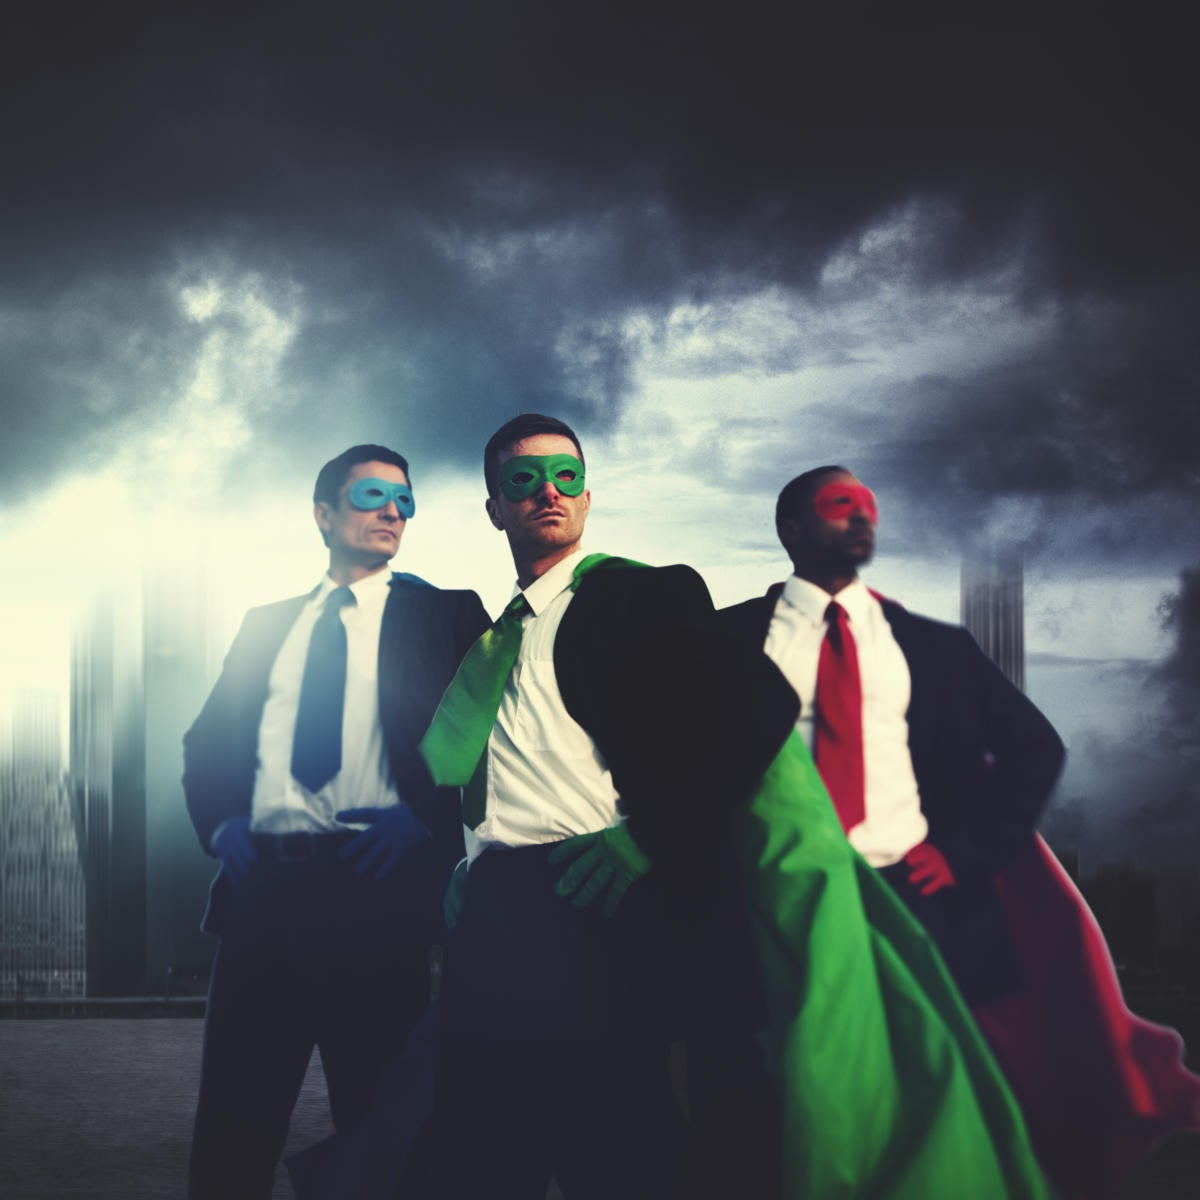 3 colorful superhero executives against cloudy sky